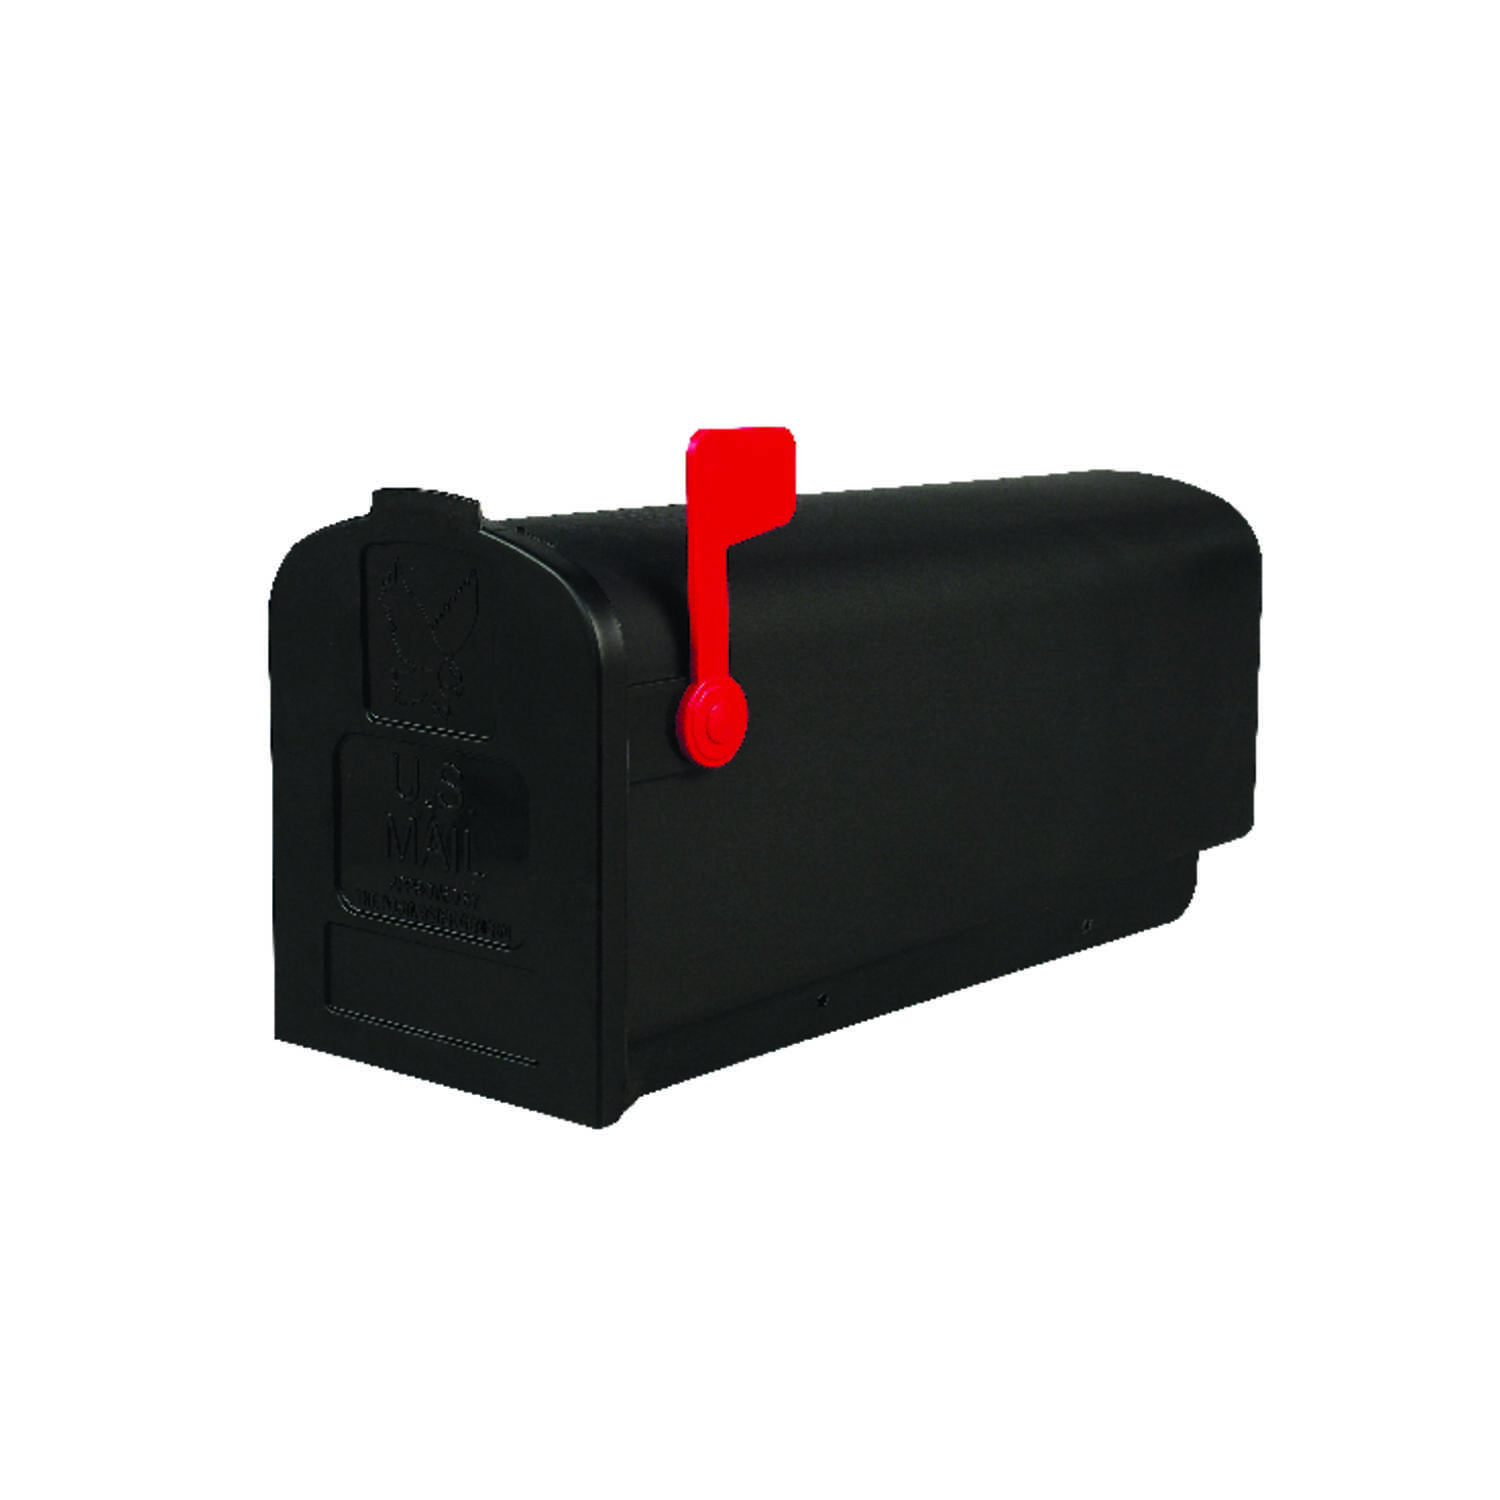 Gibraltar  Deluxe Polybox  Plastic  Post Mounted  Black  Mailbox  9-9/16 in. H x 7-7/8 in. W x 19-3/